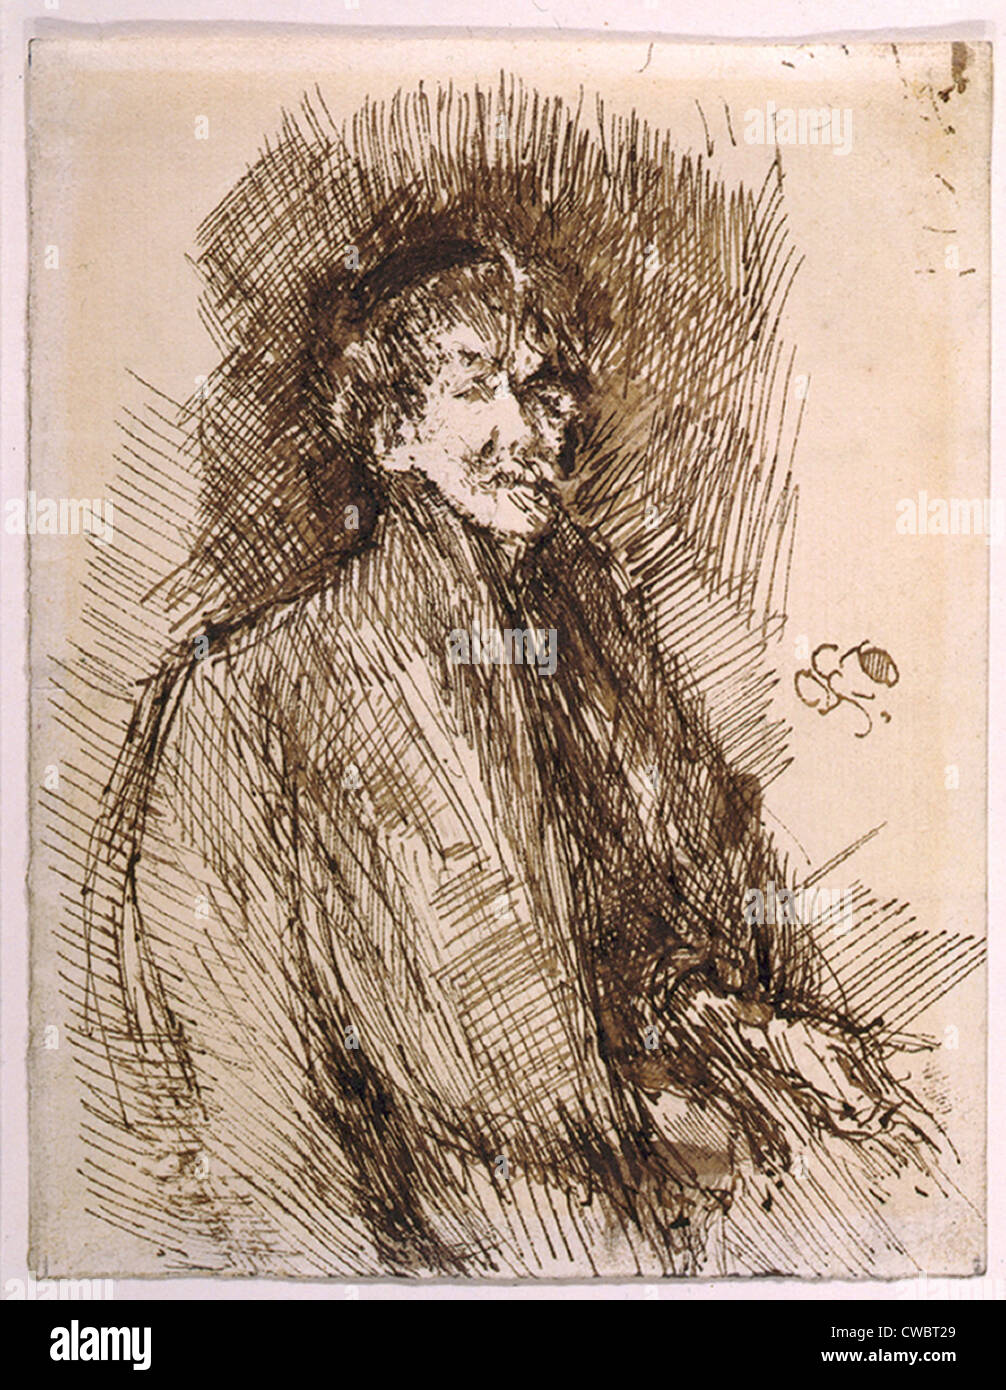 James McNeill Whistler (1834-1903), self-portrait drawn in his abstracted impressionist style. Ca. 1899. - Stock Image